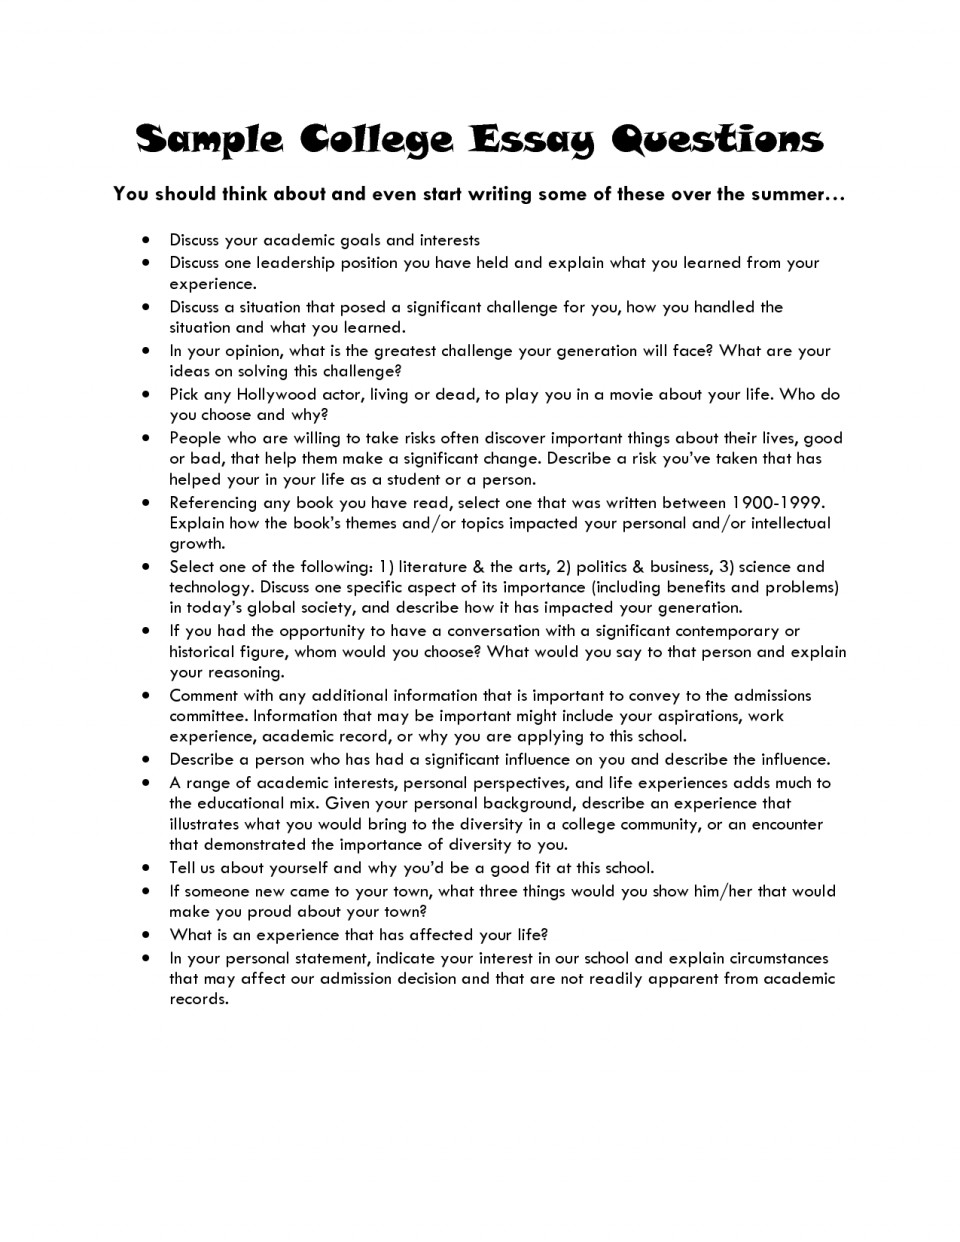 008 Sample Of College Essay Questions Professional Resume Templates Prompts For Ucla 4 List Texas Coalitions Csu Harvard Uc Stanford Impressive Writing Prompt Examples Amherst 2017 Pomona 960